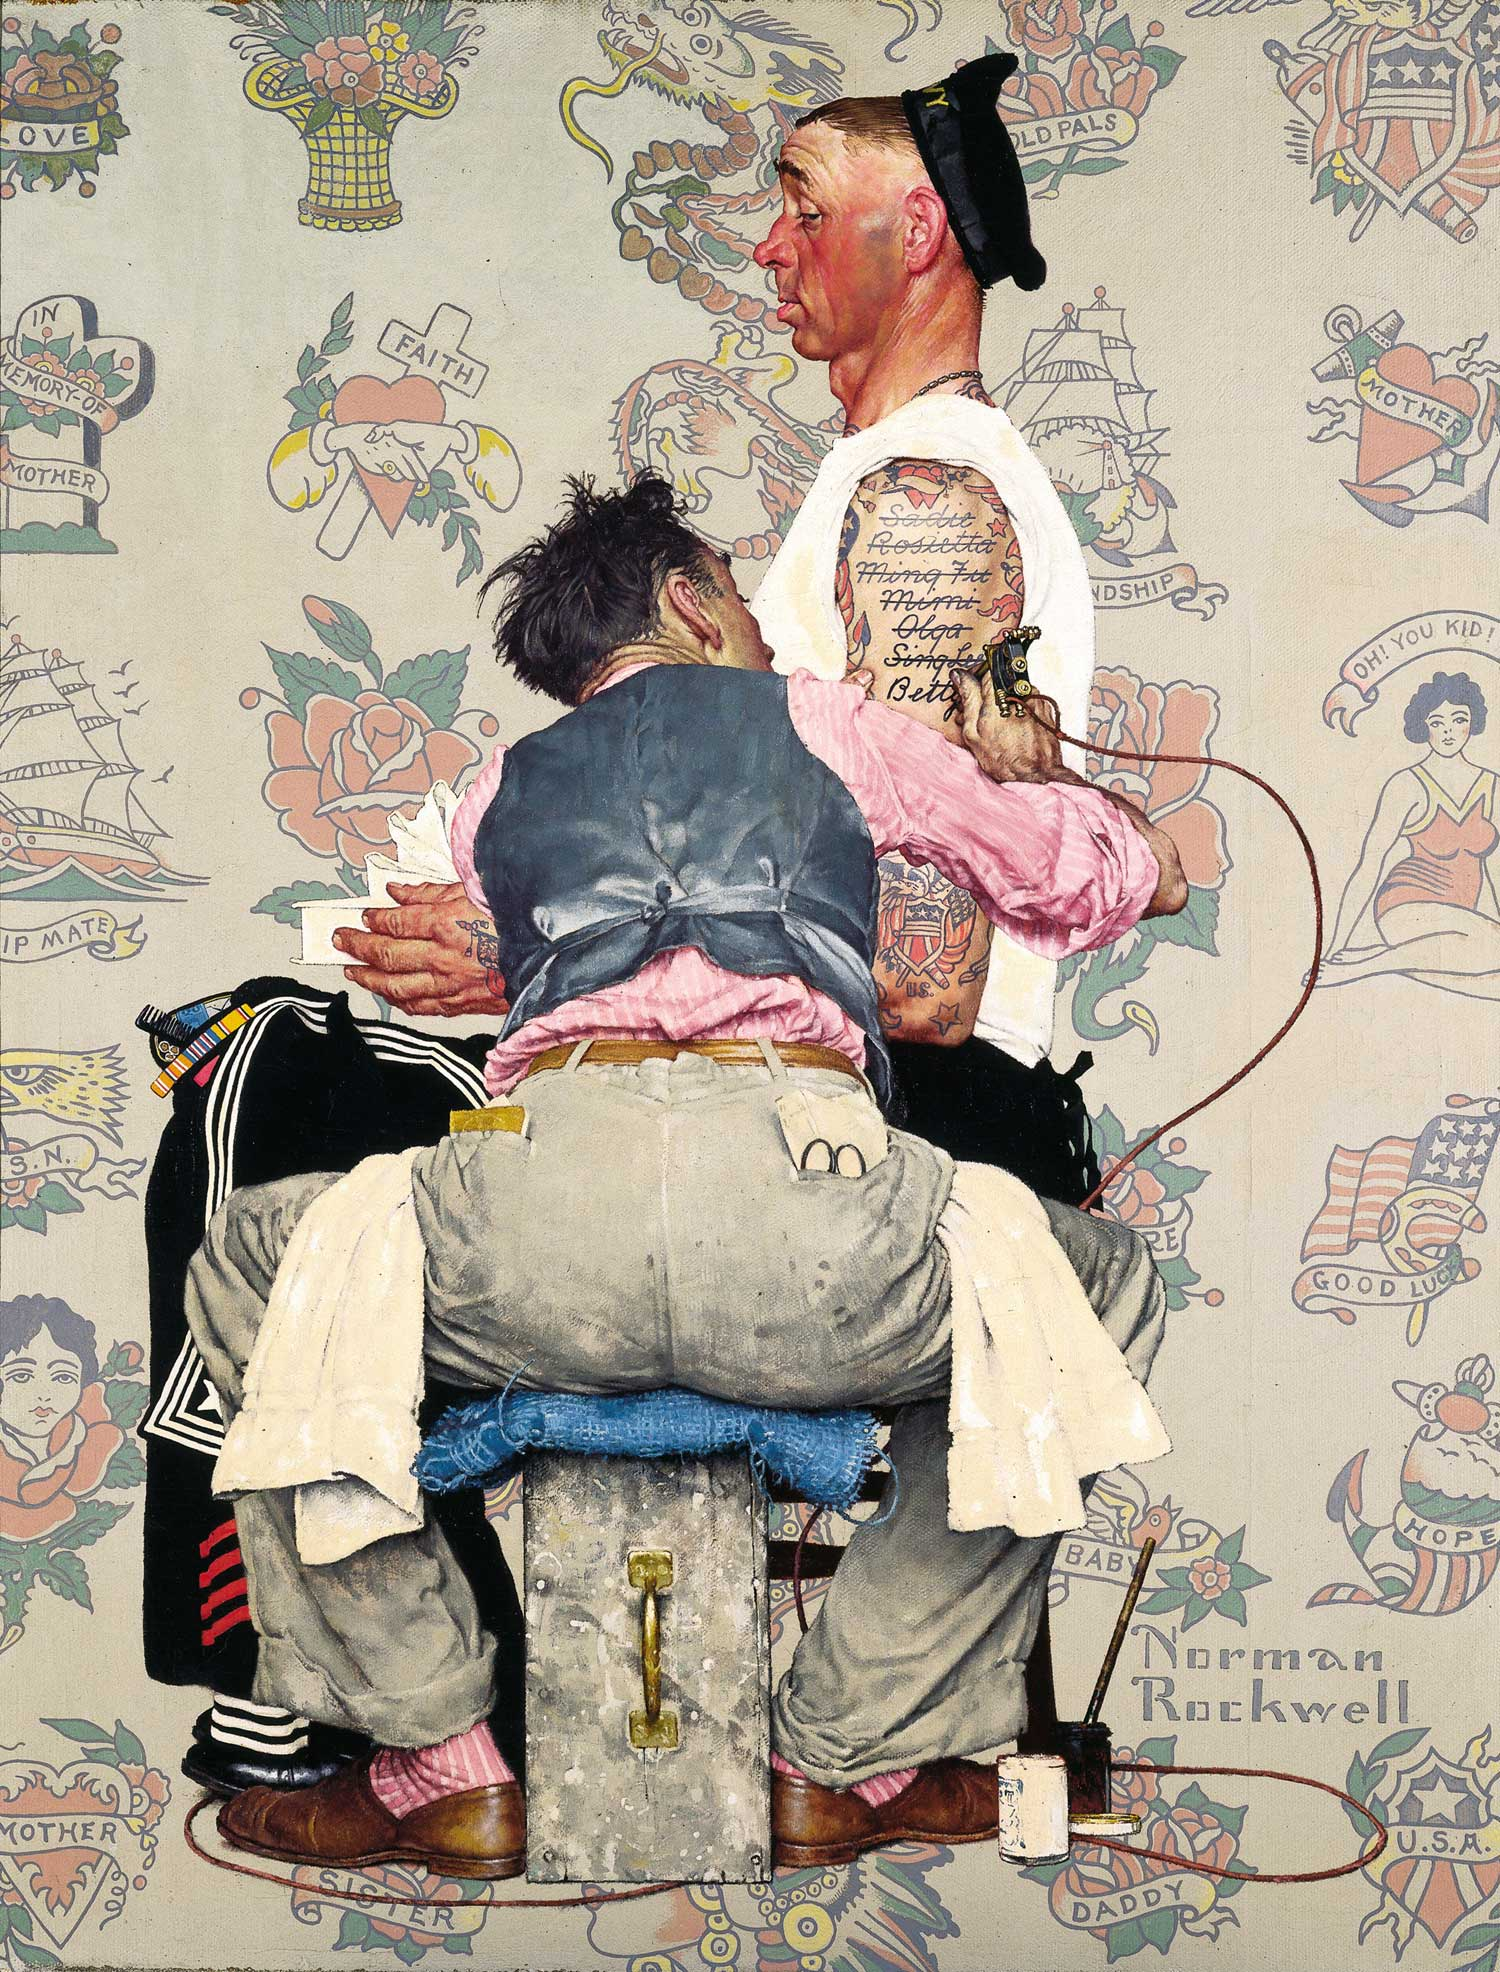 Tattoo artist norman rockwell museum the home for for Norman rockwell tattoo